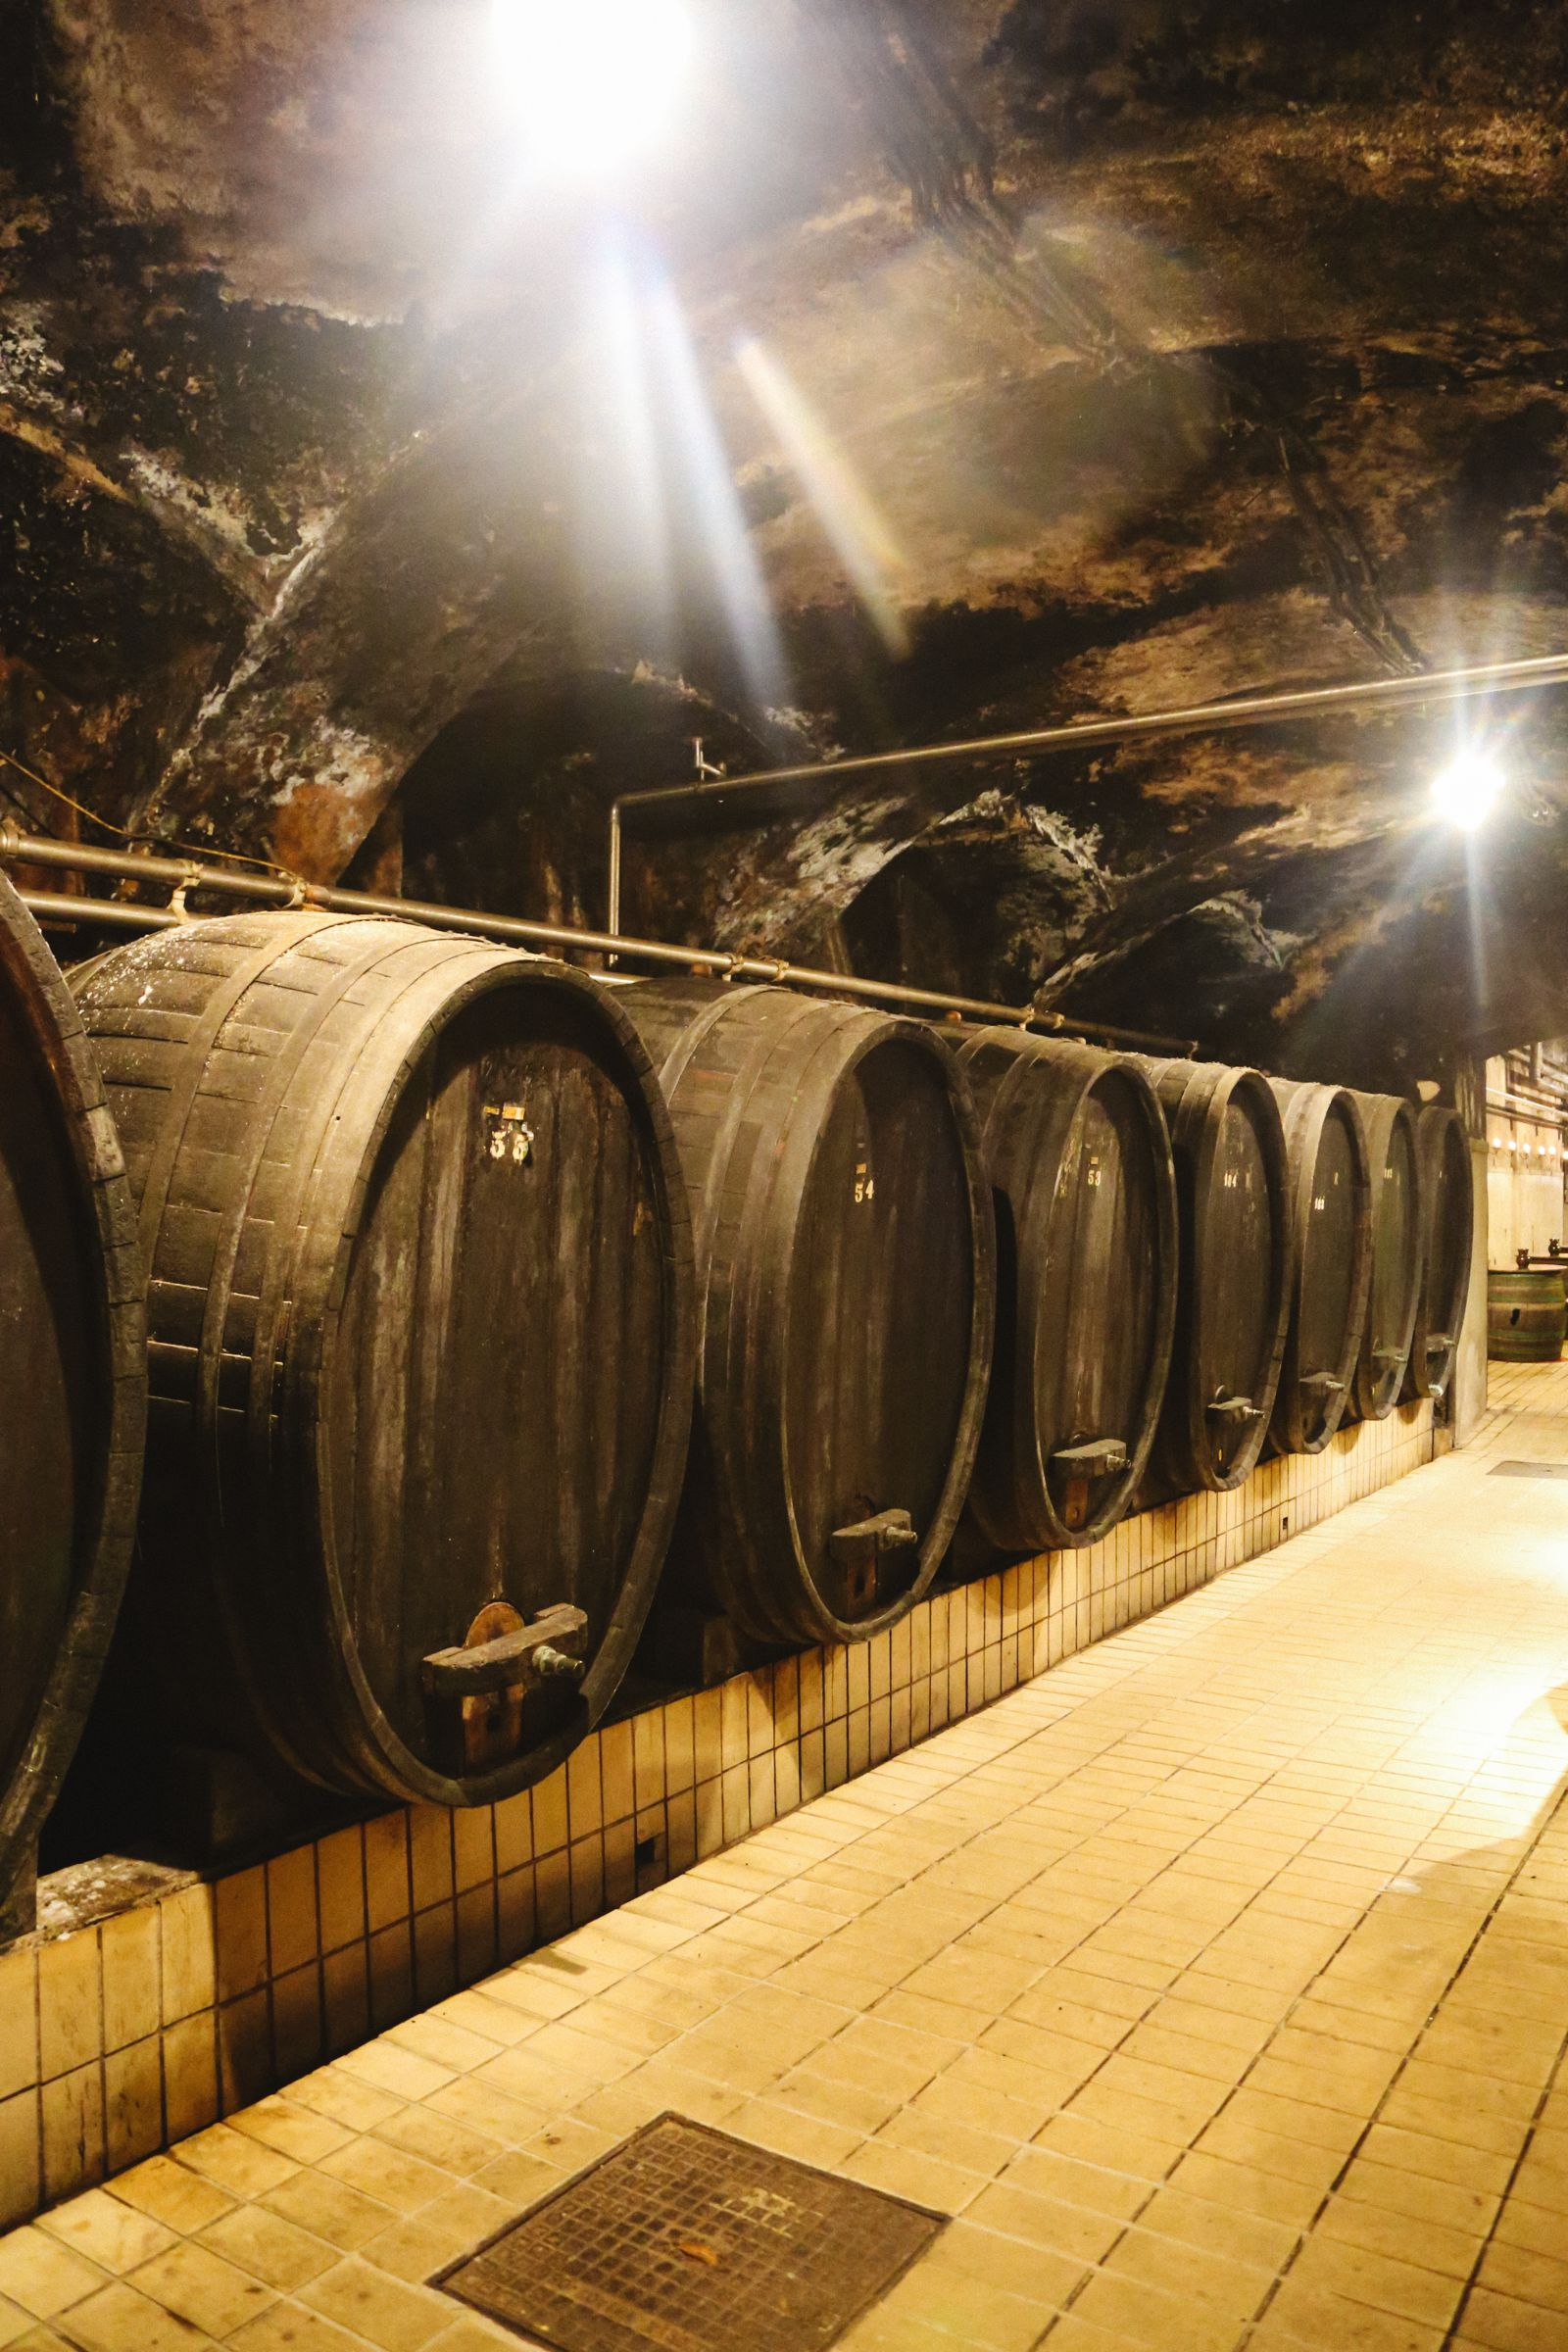 There's A Big Reason You Should Visit Slovenia This Year - The Wine! (9)